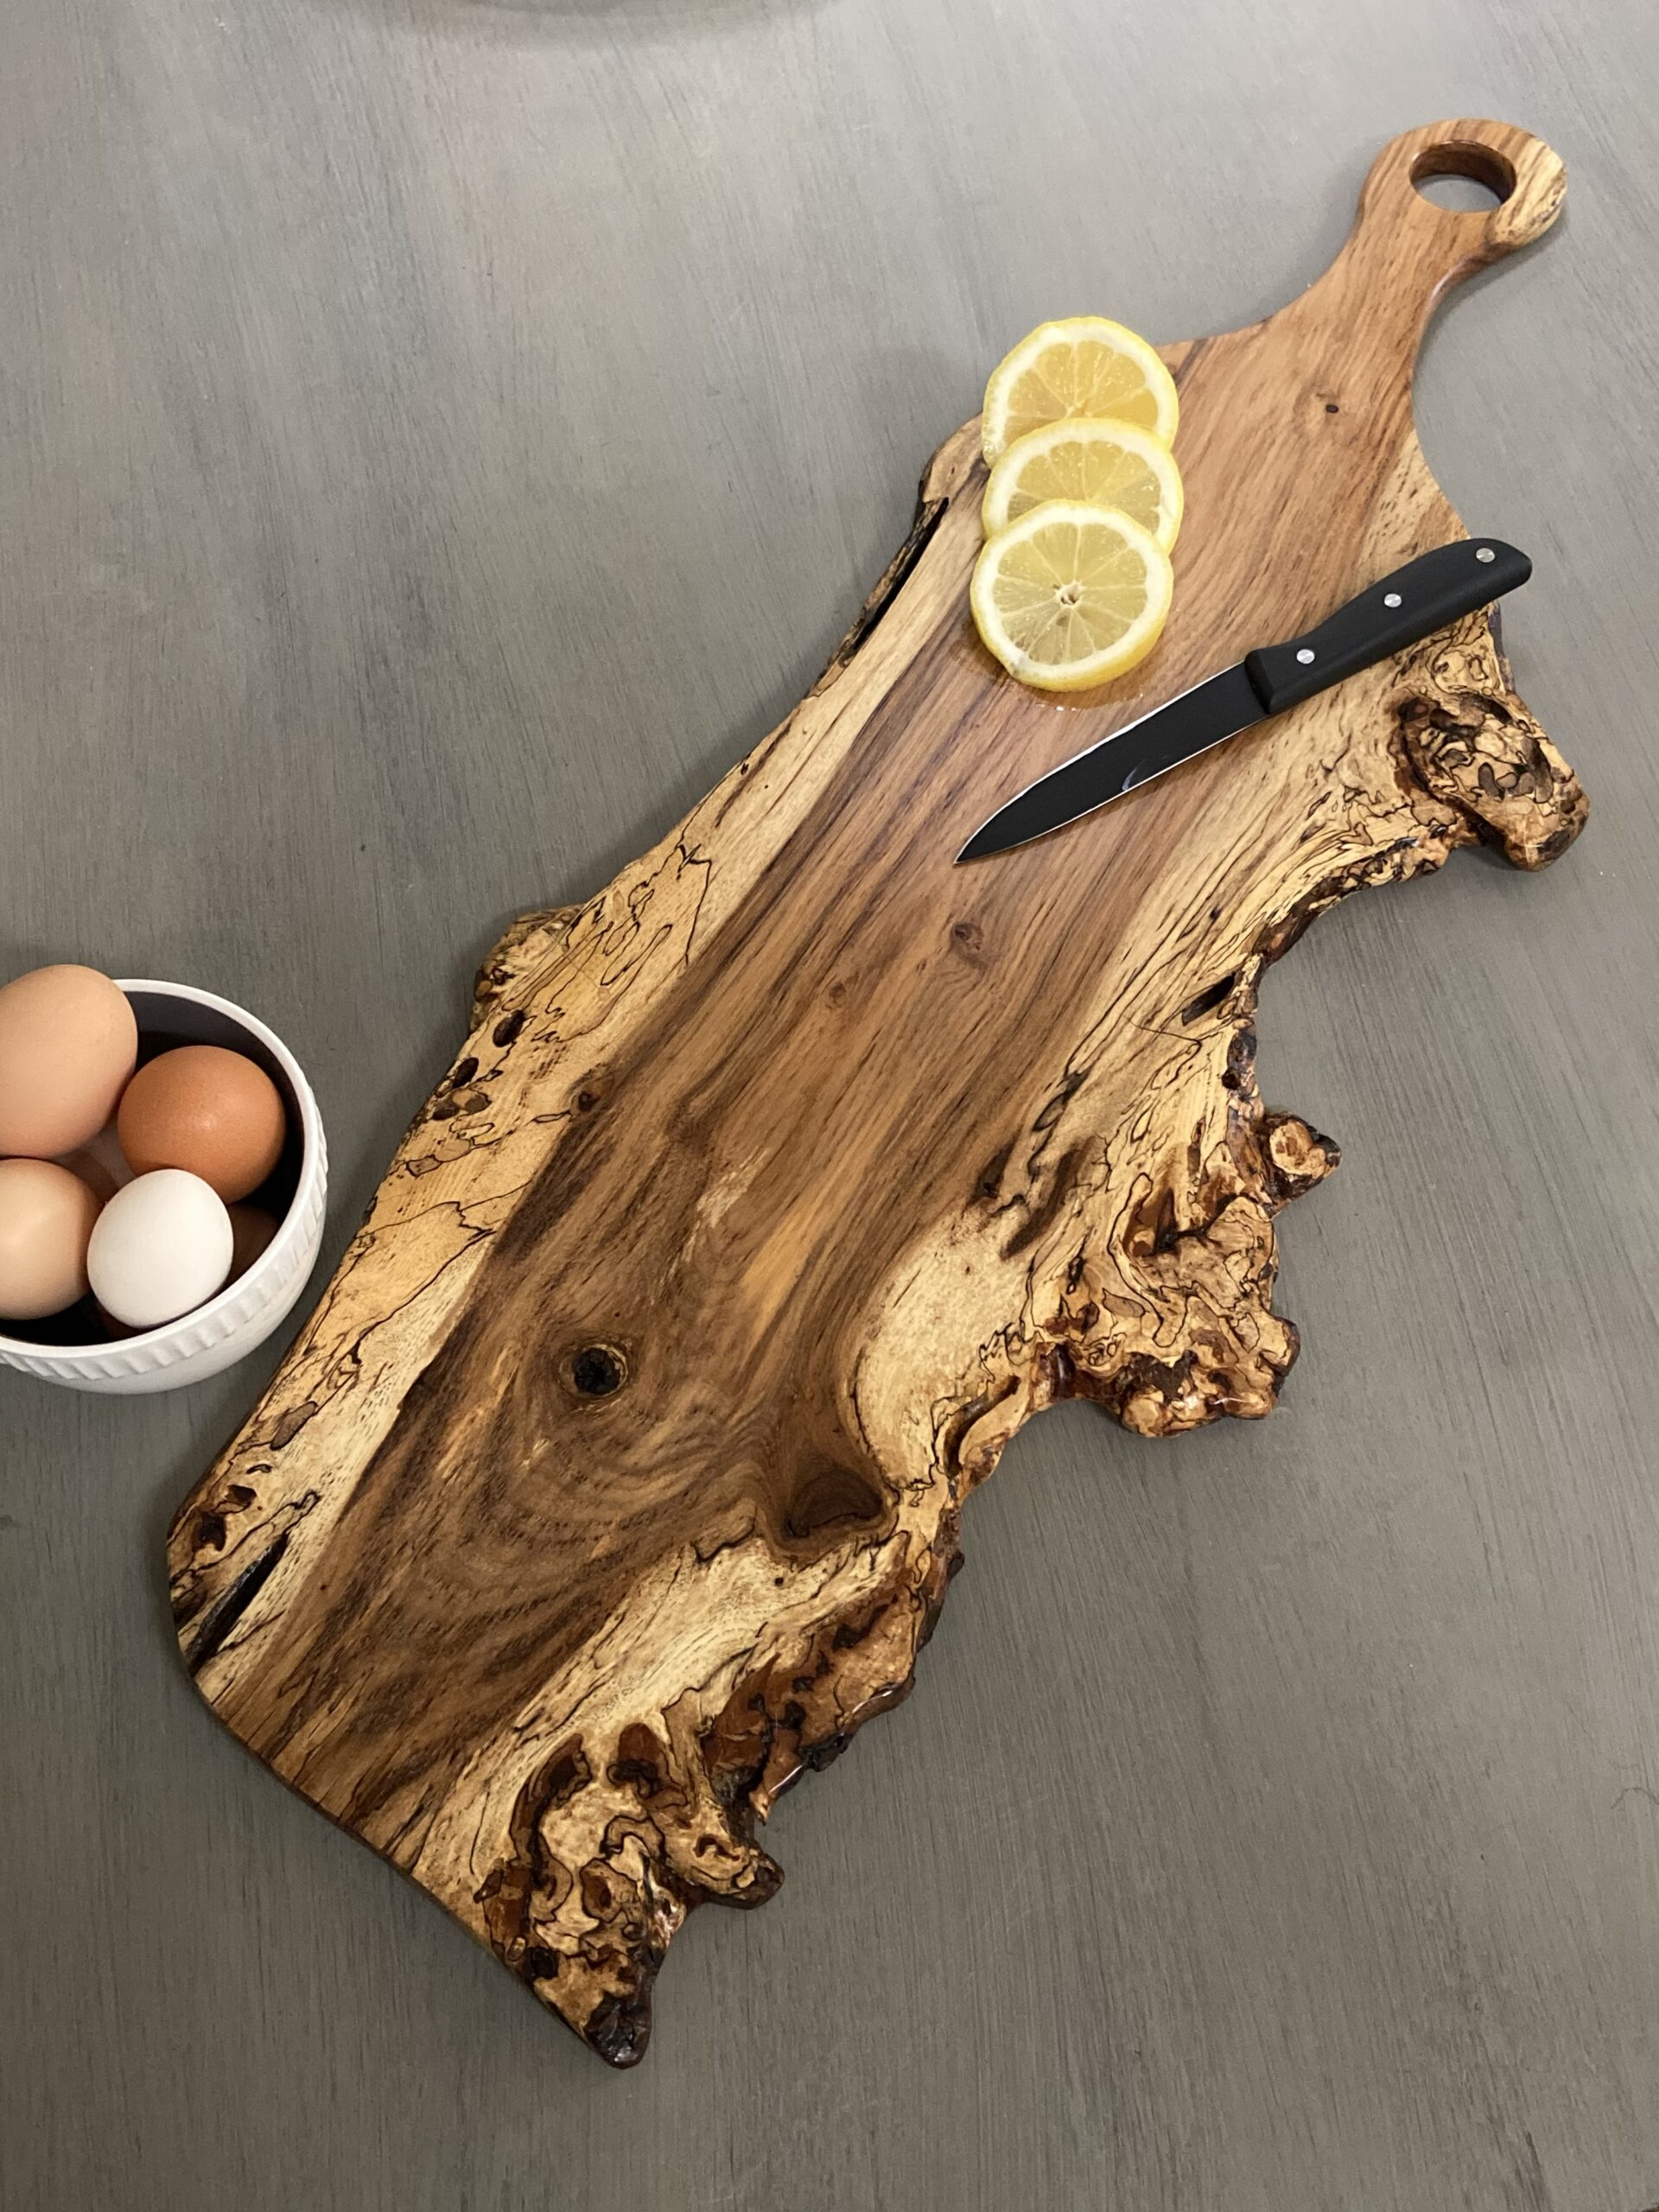 Simply Surreal Cutting Board